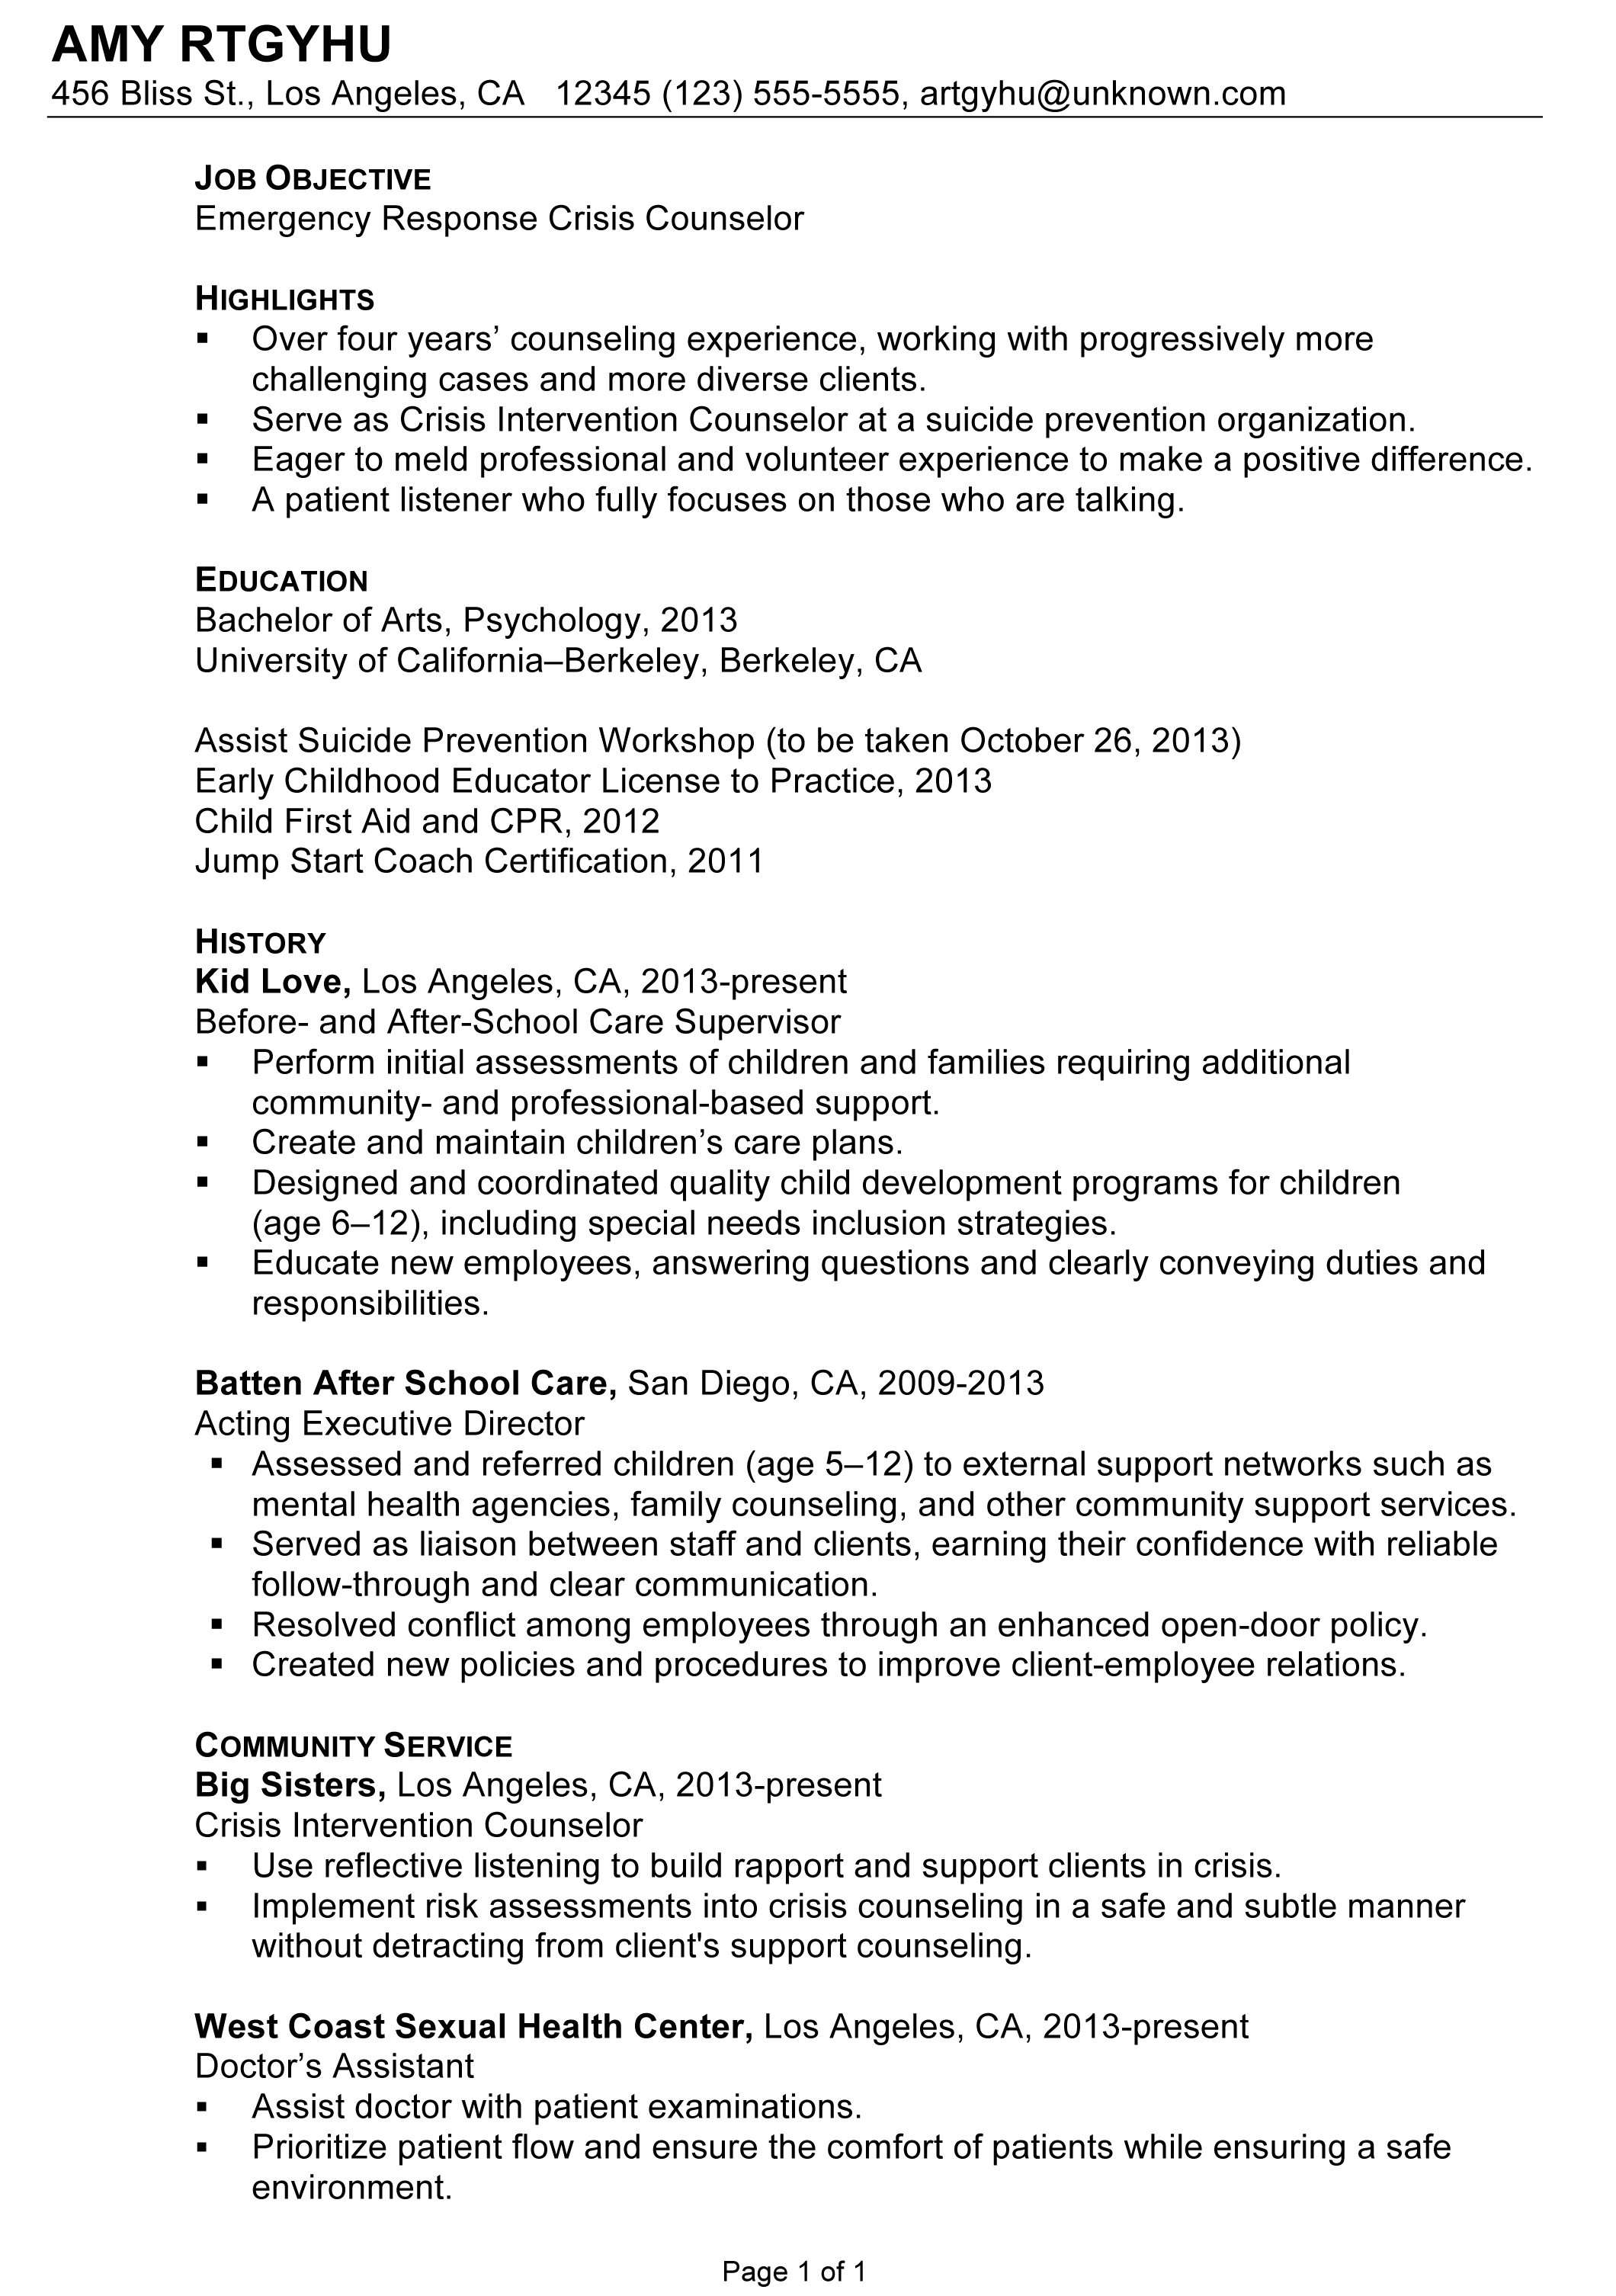 resume format bullet points resume format pinterest resume